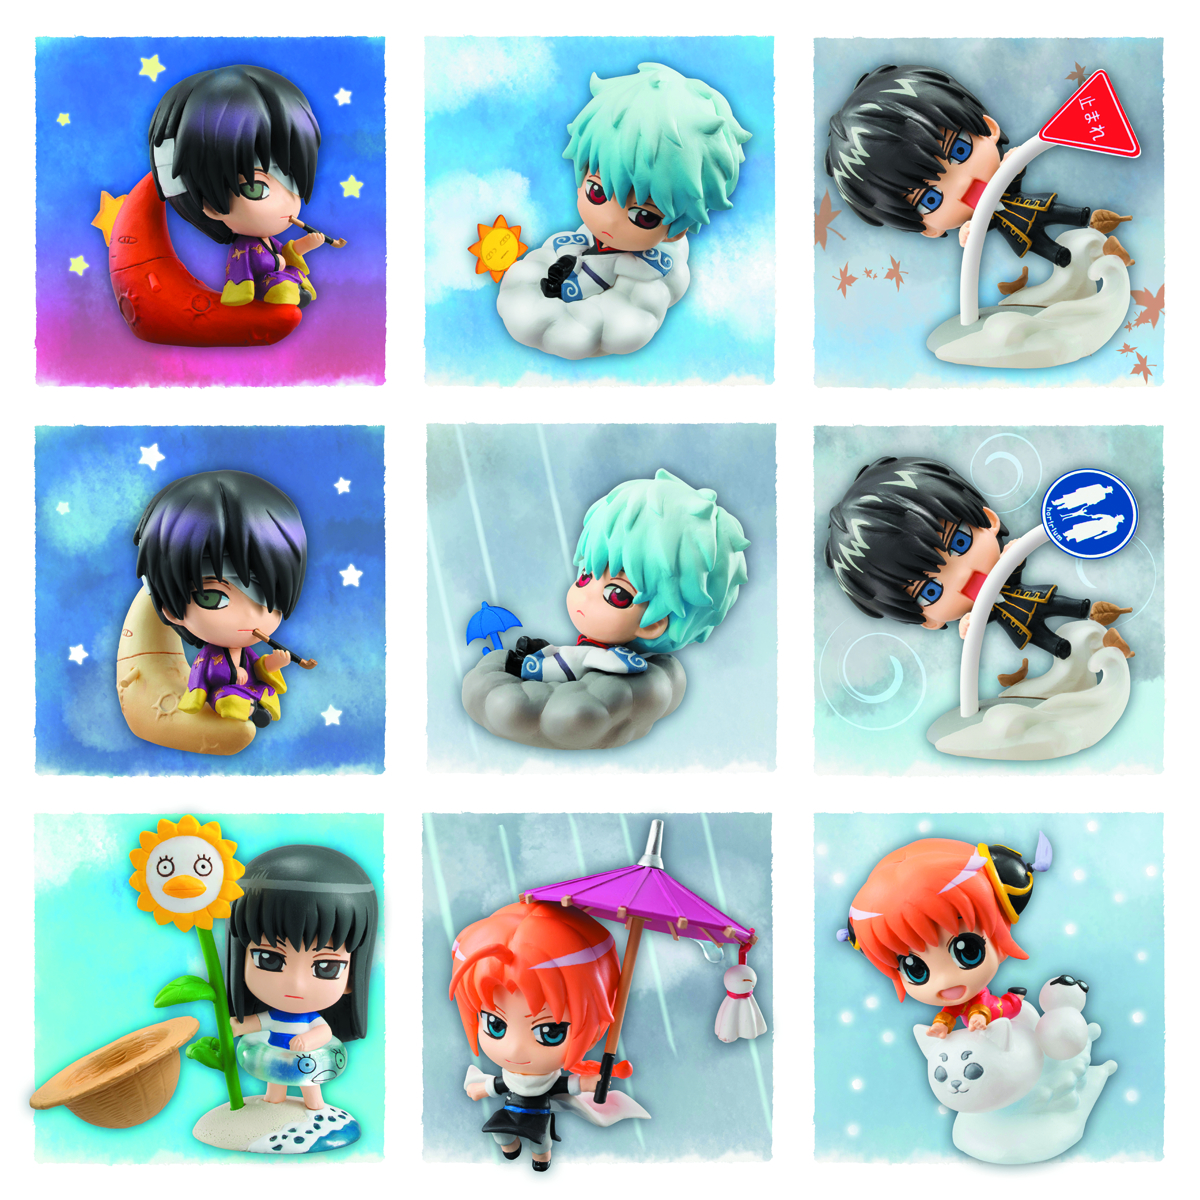 GINTAMA WEATHER FORECAST PETIT CHARA LAND 10PC DS